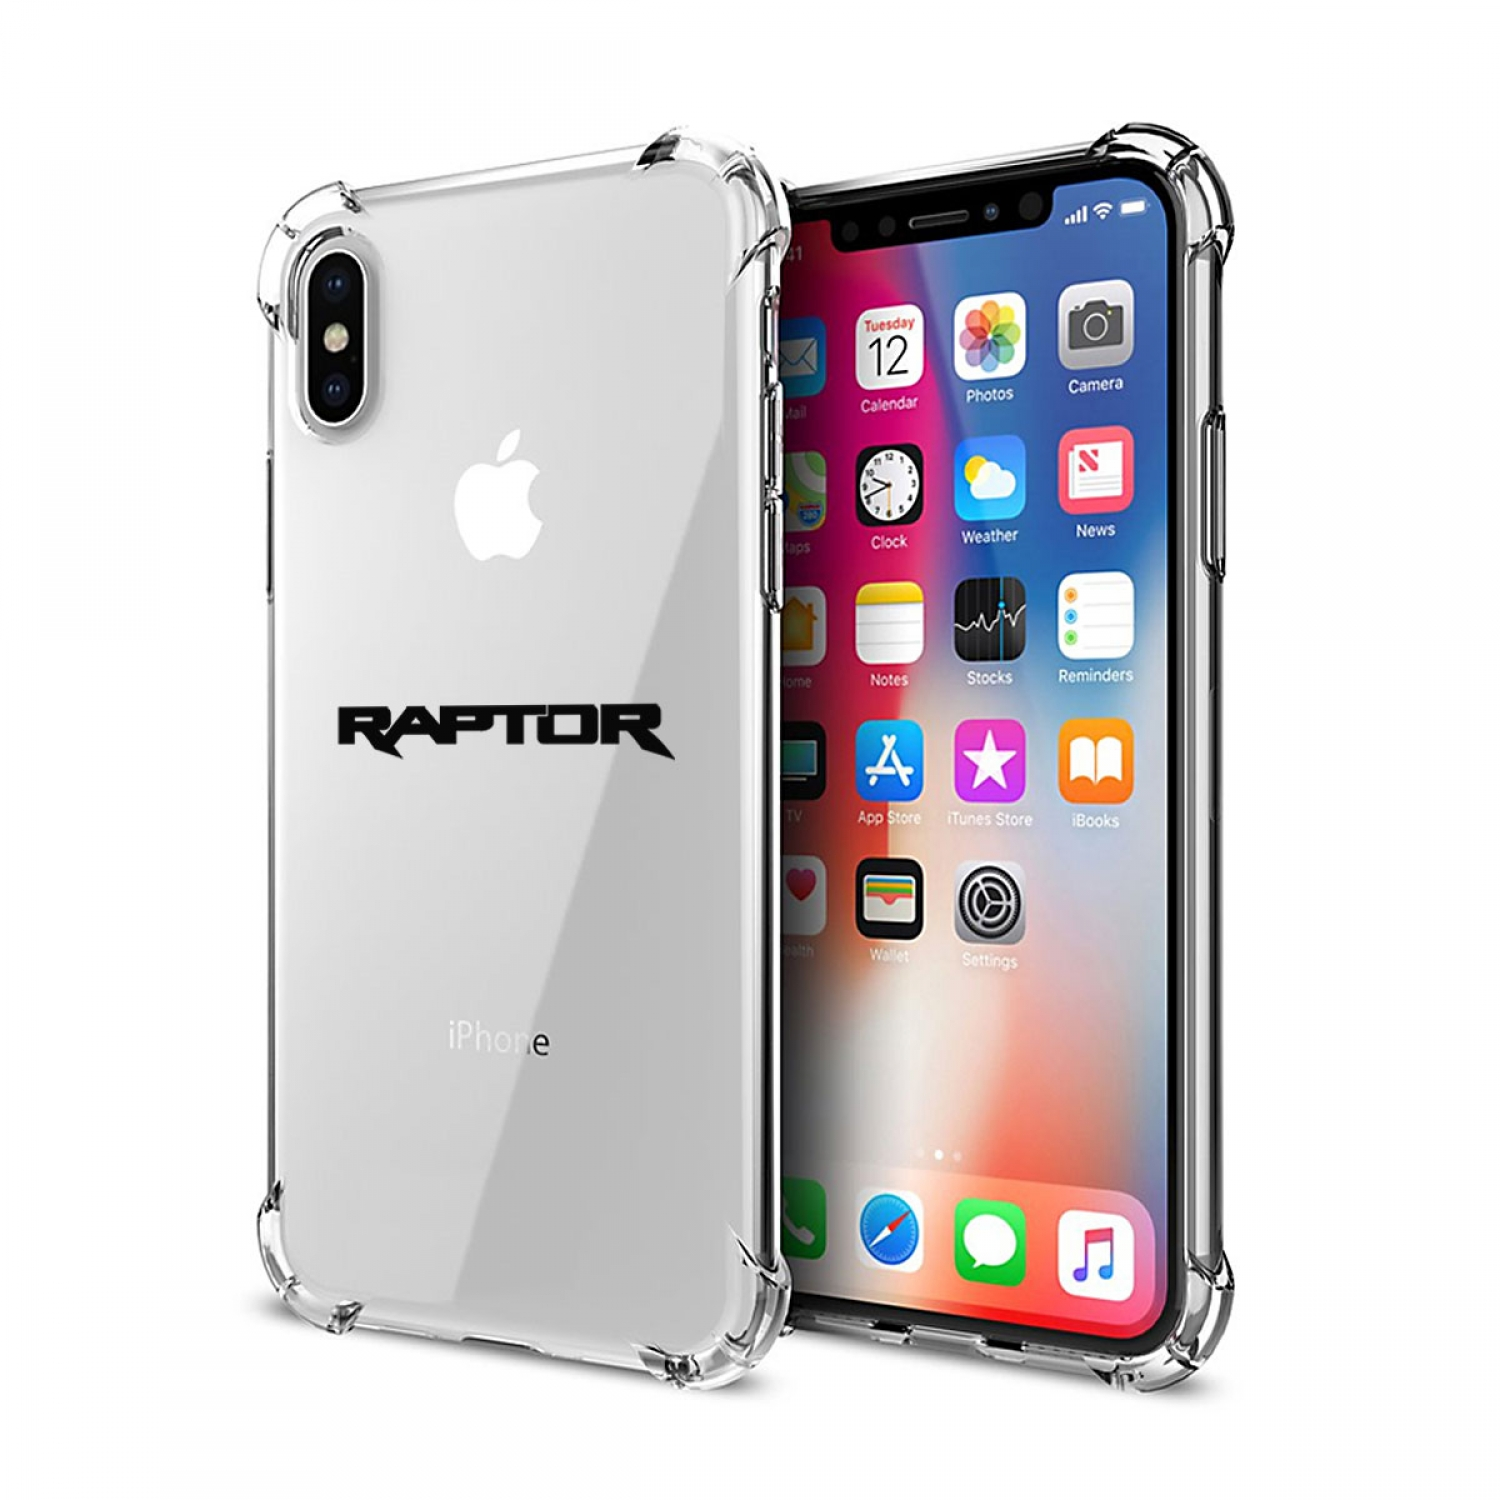 Ford F150 Raptor iPhone X Clear TPU Shockproof Cell Phone Case